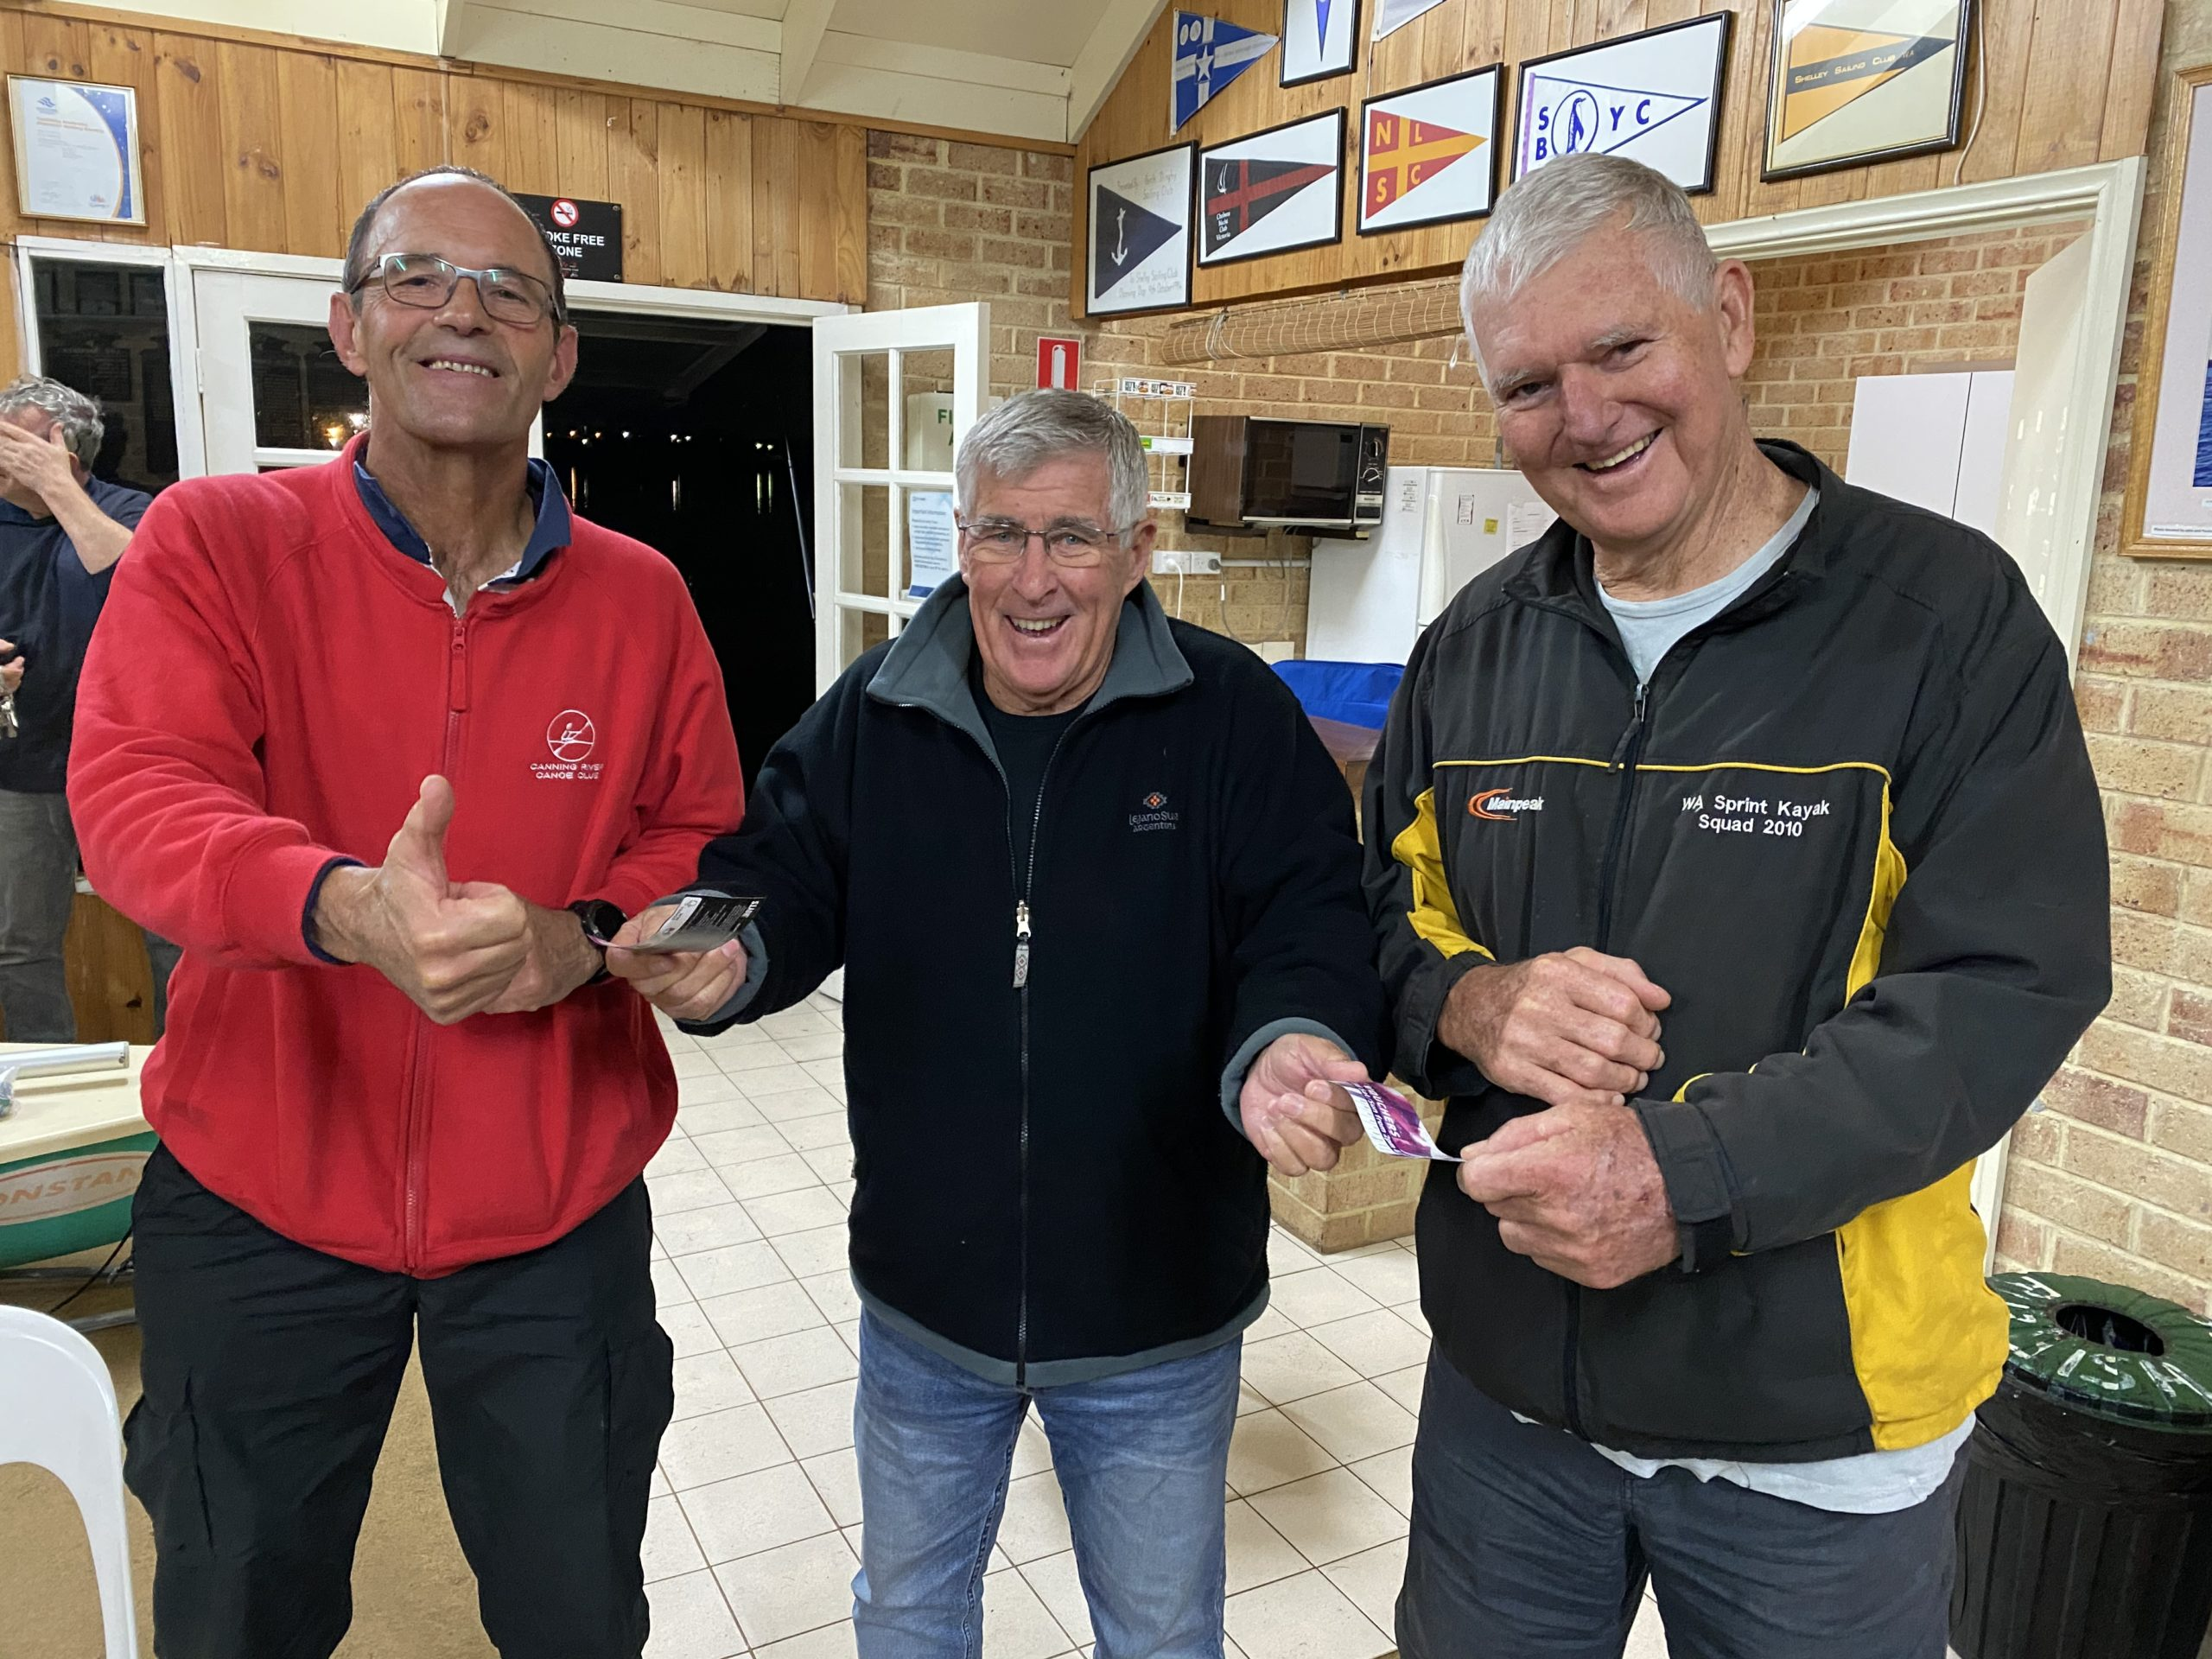 Tuesday 26th May 2020 : Tonight's photo shows club member Joe Wilson presenting Doug Hodson and Jerry Alderson with a movie voucher.